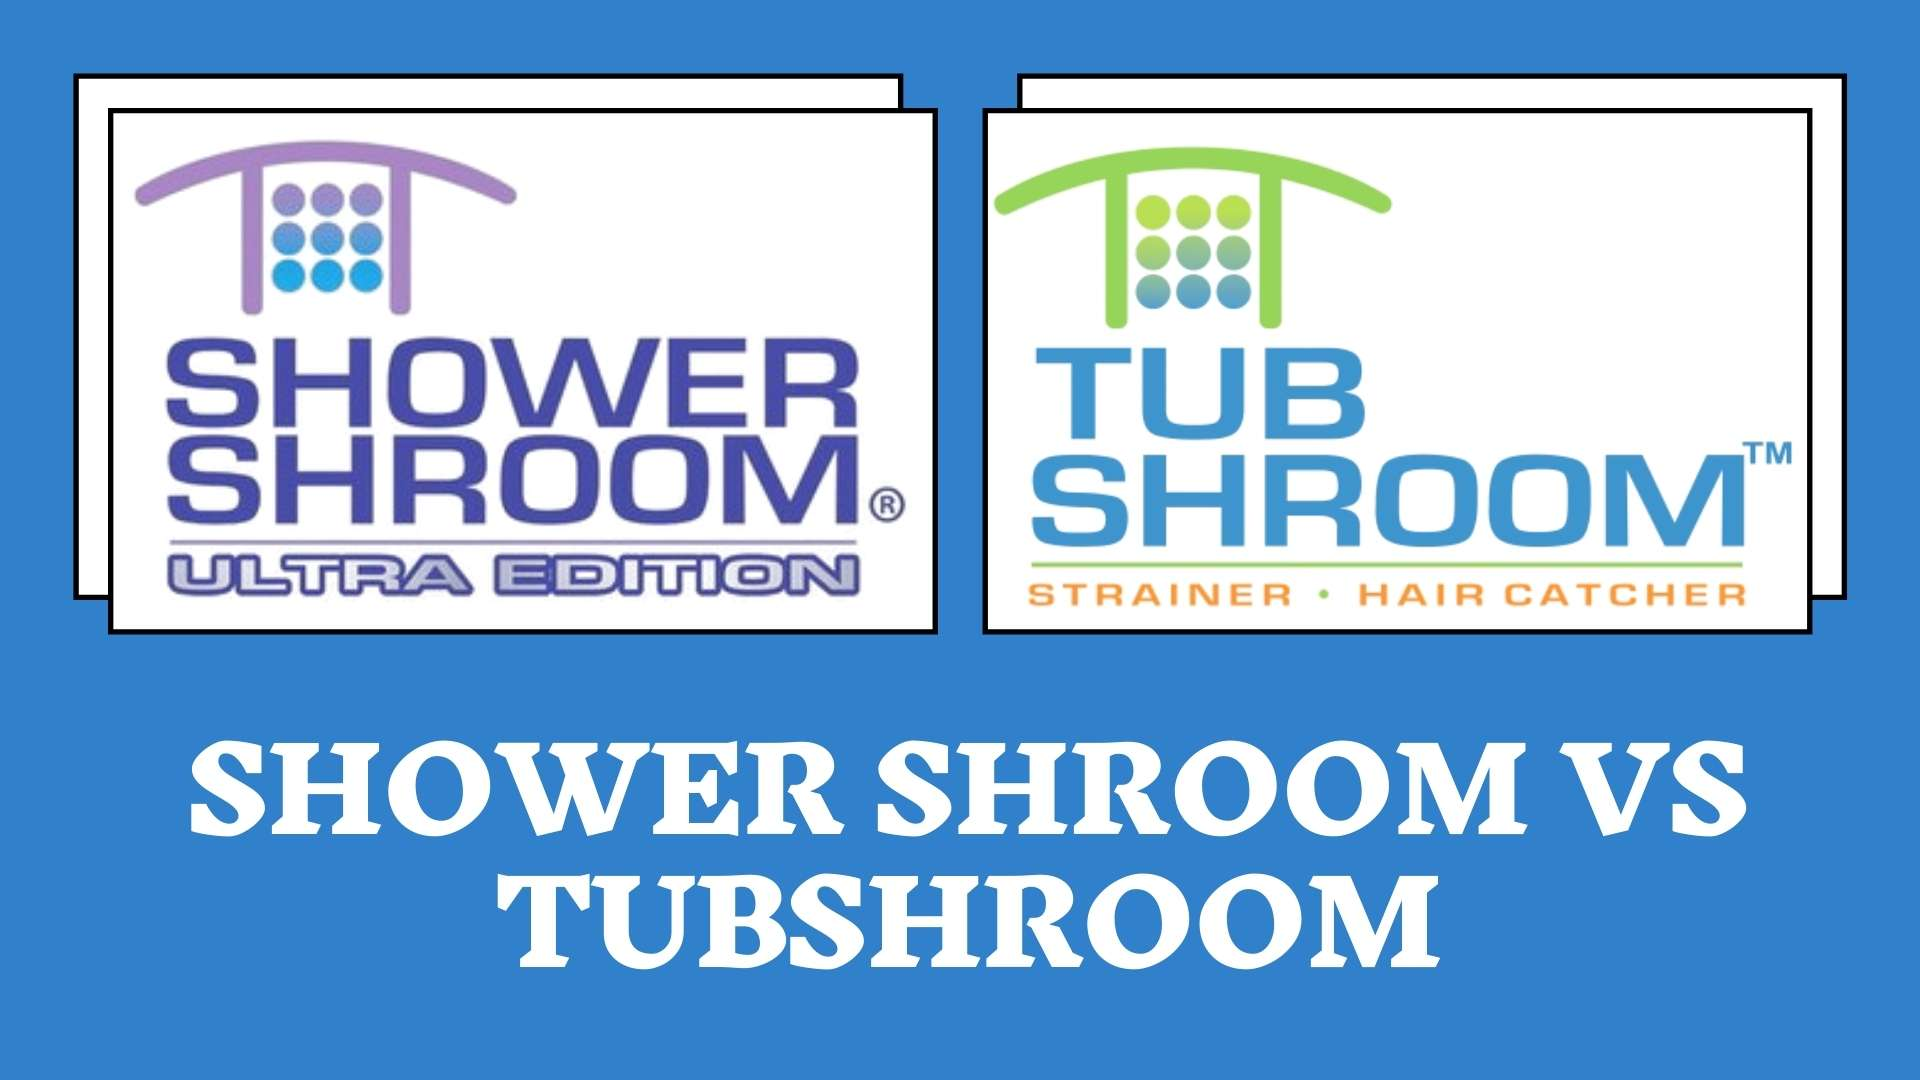 Shower Shroom vs Tubshroom